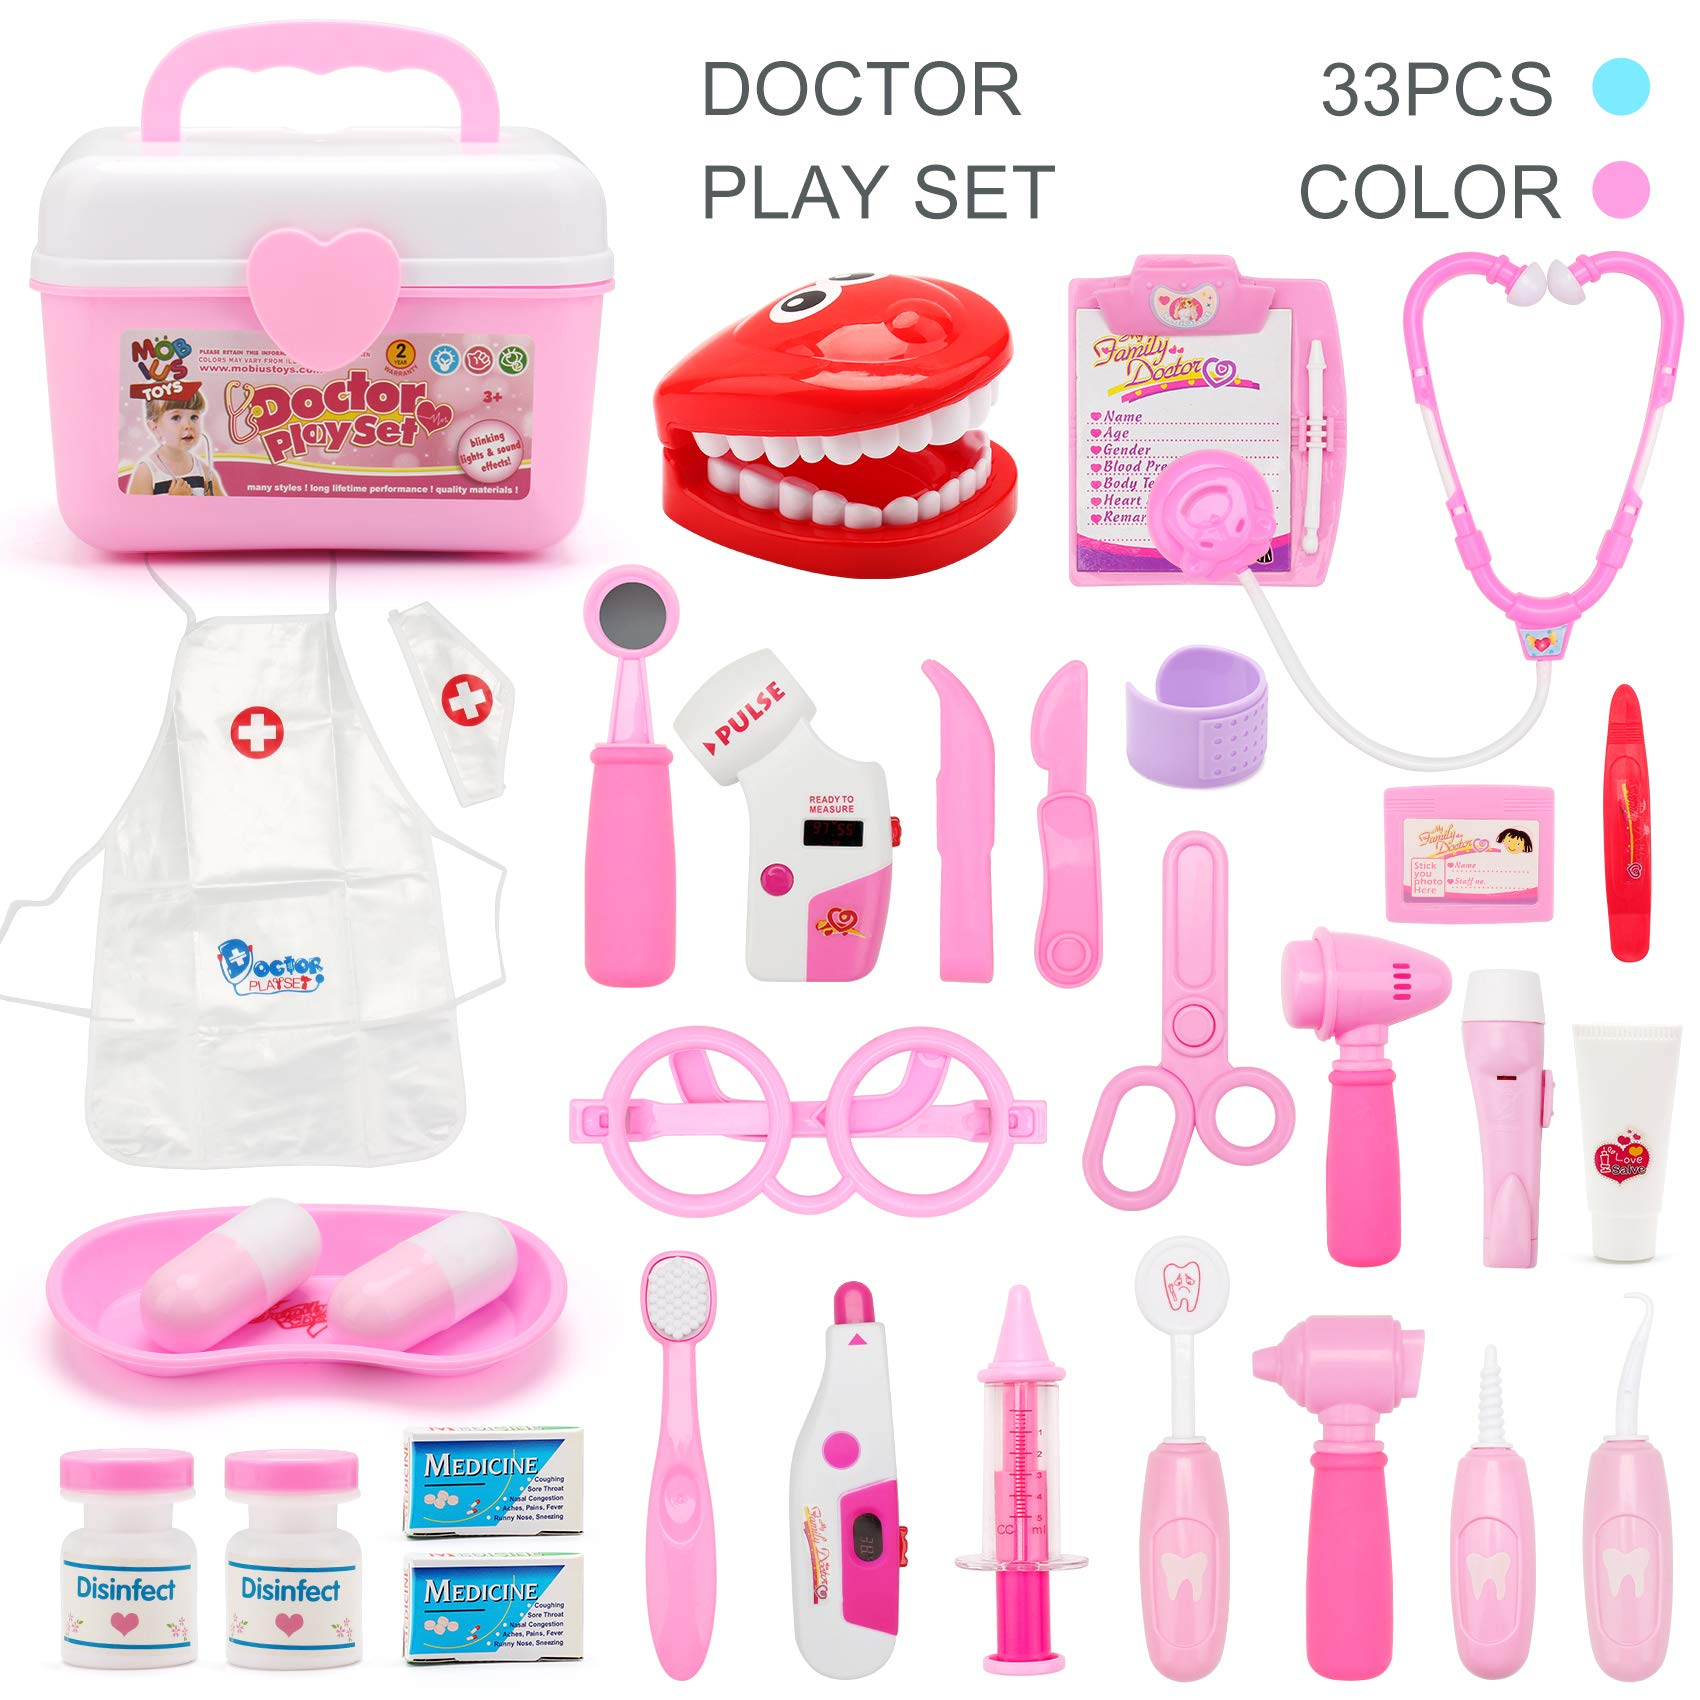 Toy Doctor Kit (33 Pcs) Pretend Play Set for Kids, Doctor Medical Kit and Dentist Medical Kit, with Dress-up Apron Coat, Best Kids Gifts Doctor Toys for Boys & Girls - Blue/Pink Color by MOBIUS Toys